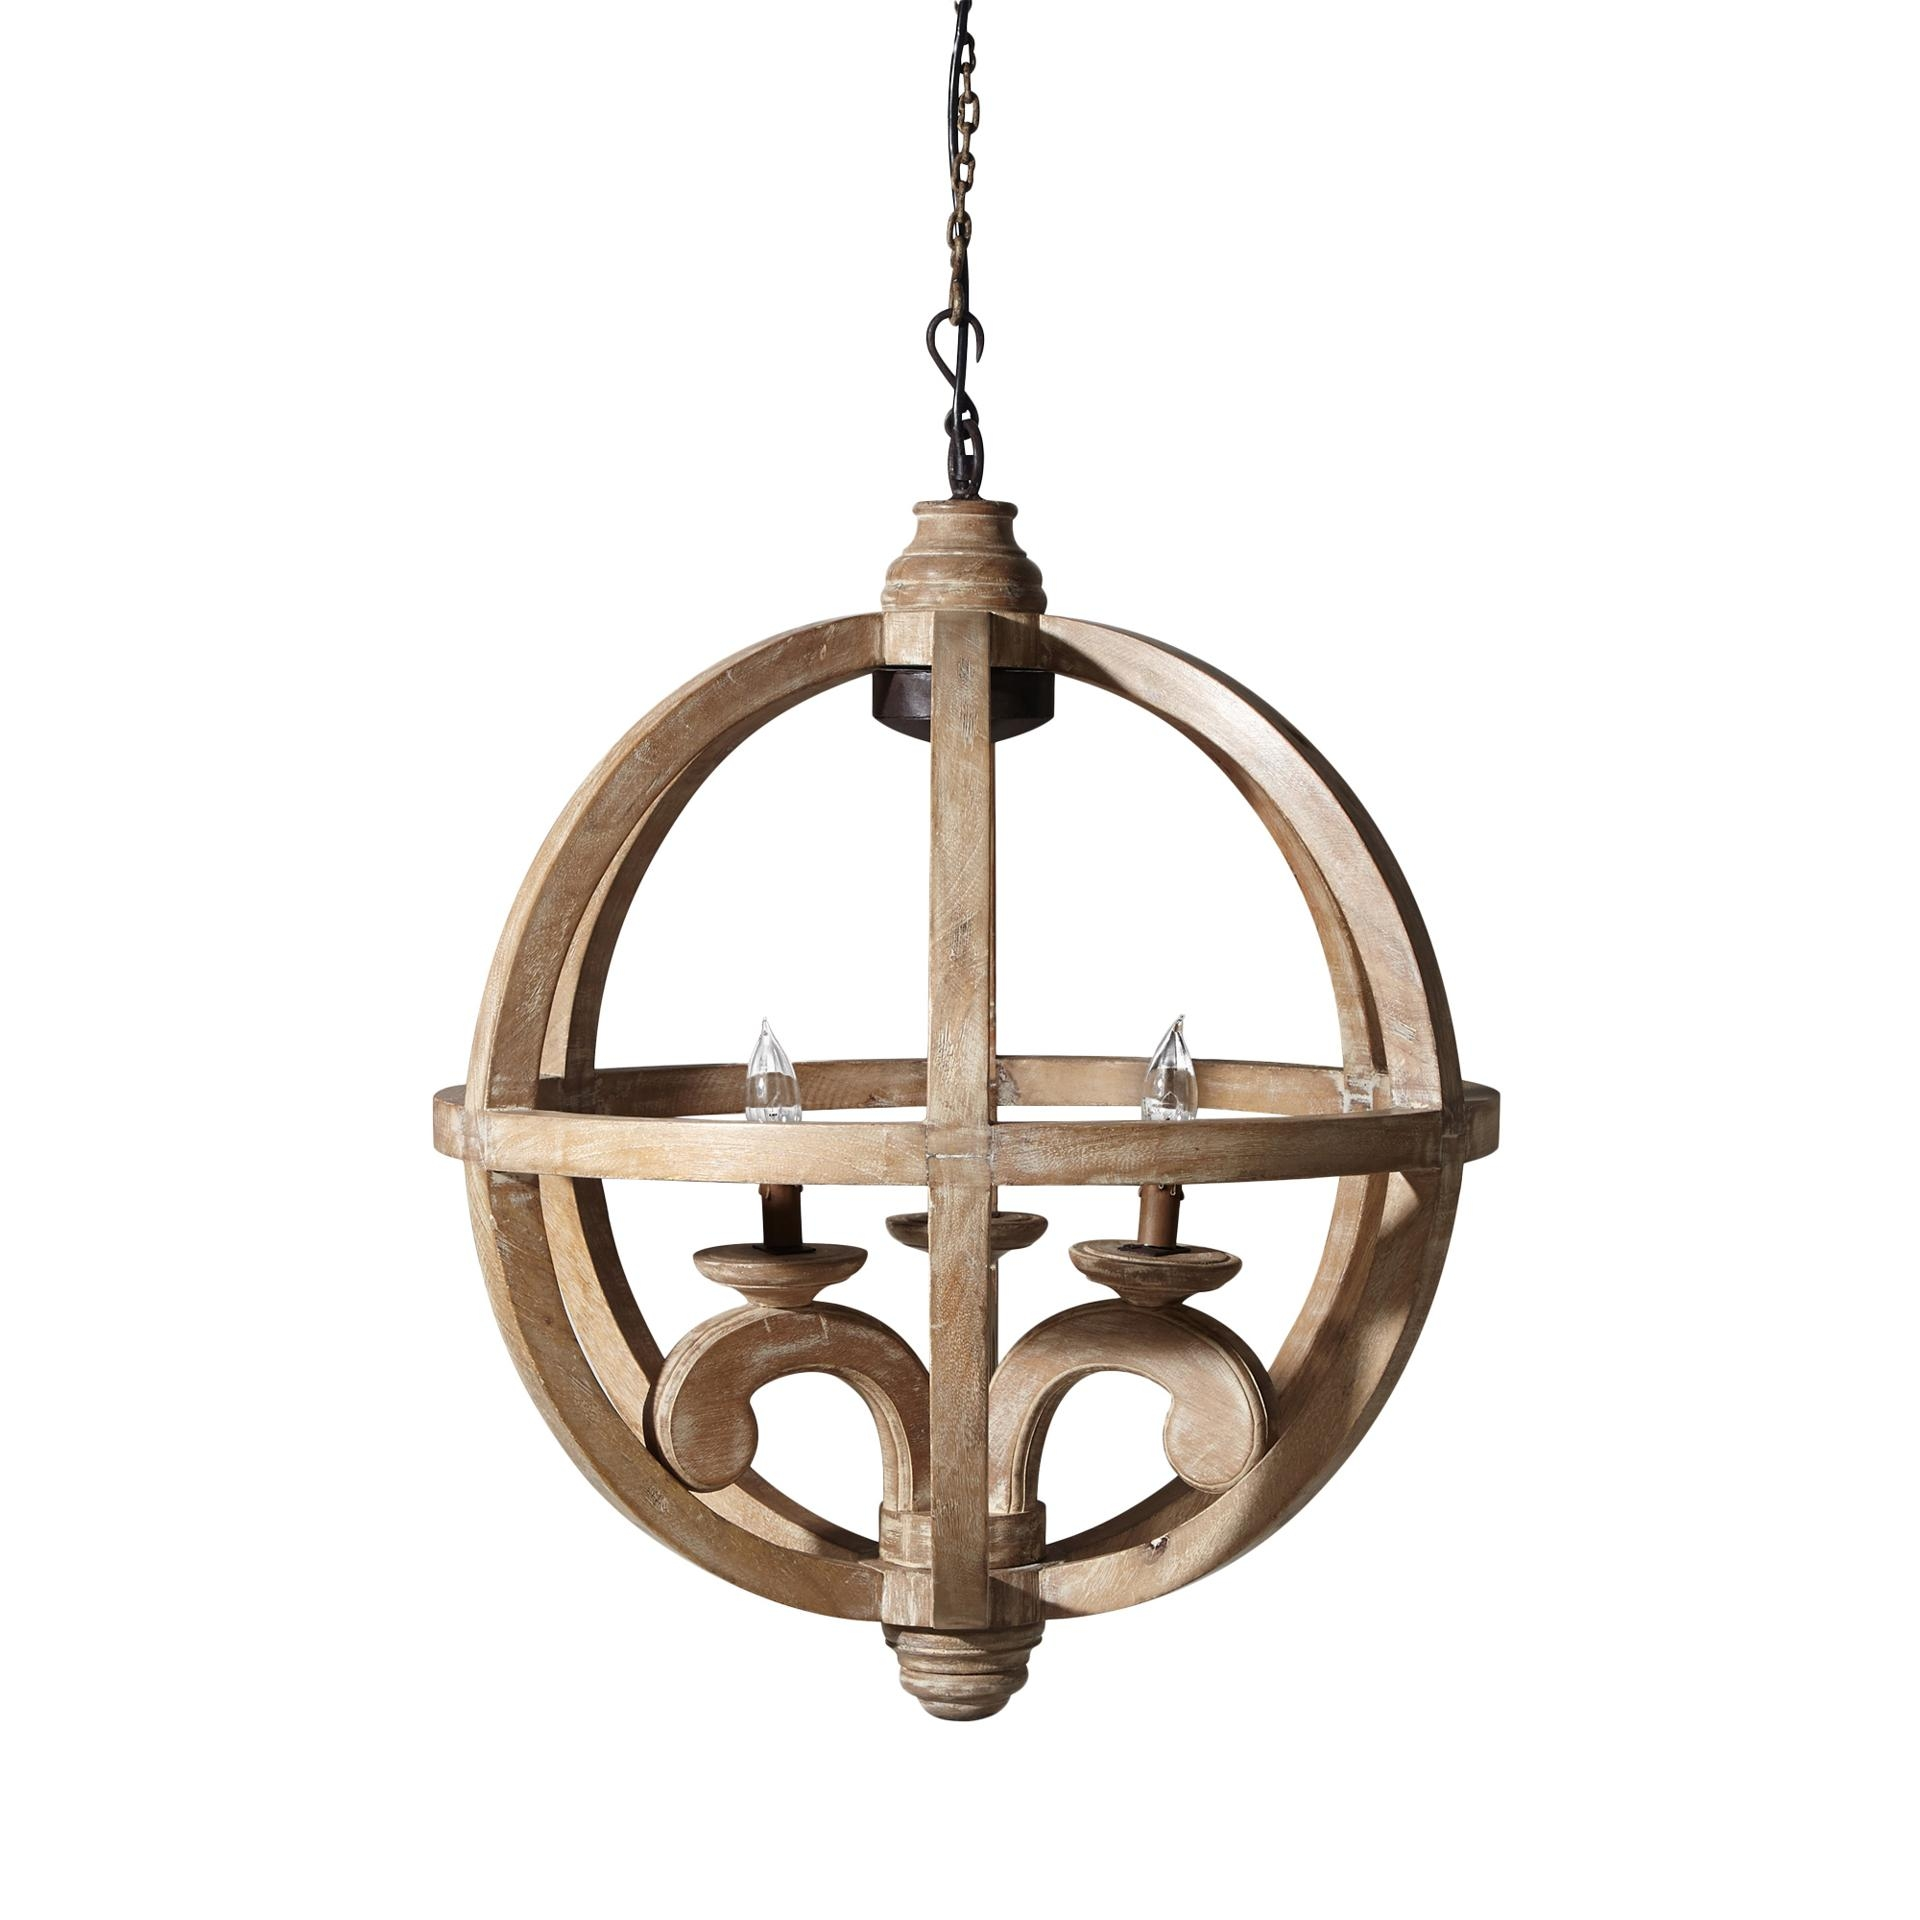 Wonderful Wooden Chandeliers For Your Home Design Planning With Throughout Wooden Chandeliers (Image 11 of 15)